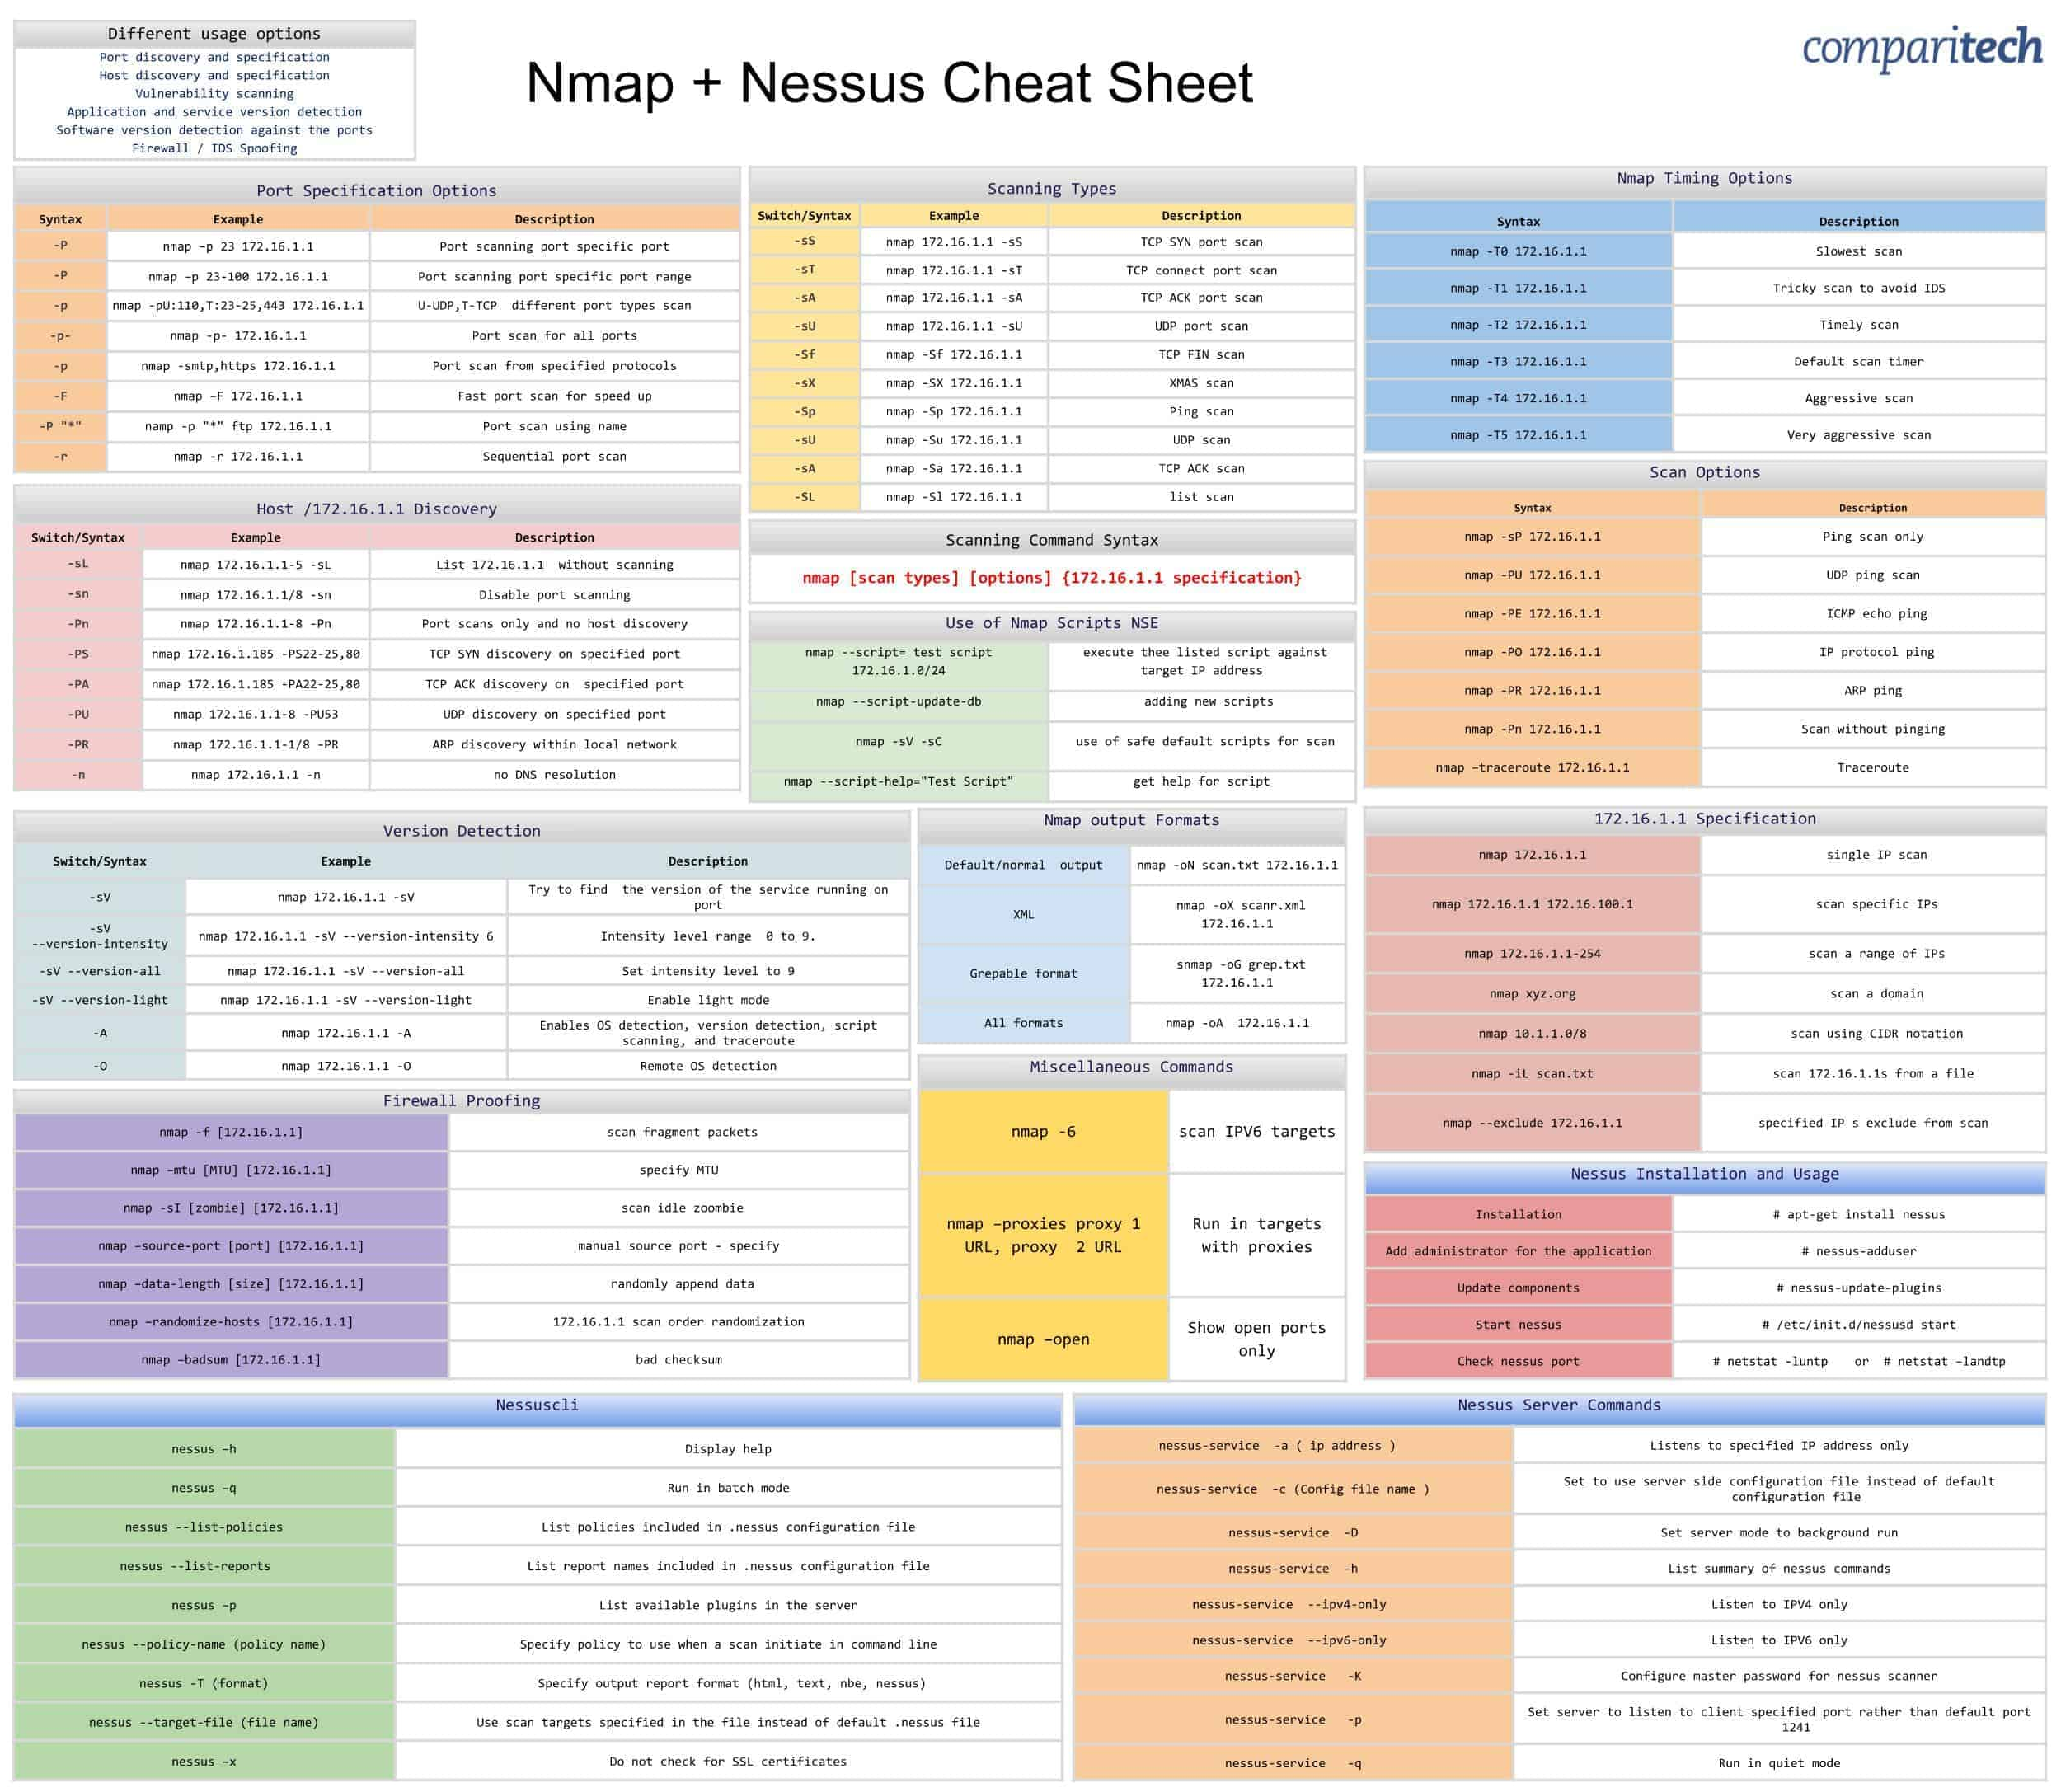 Nmap + Nessus Cheat Sheet